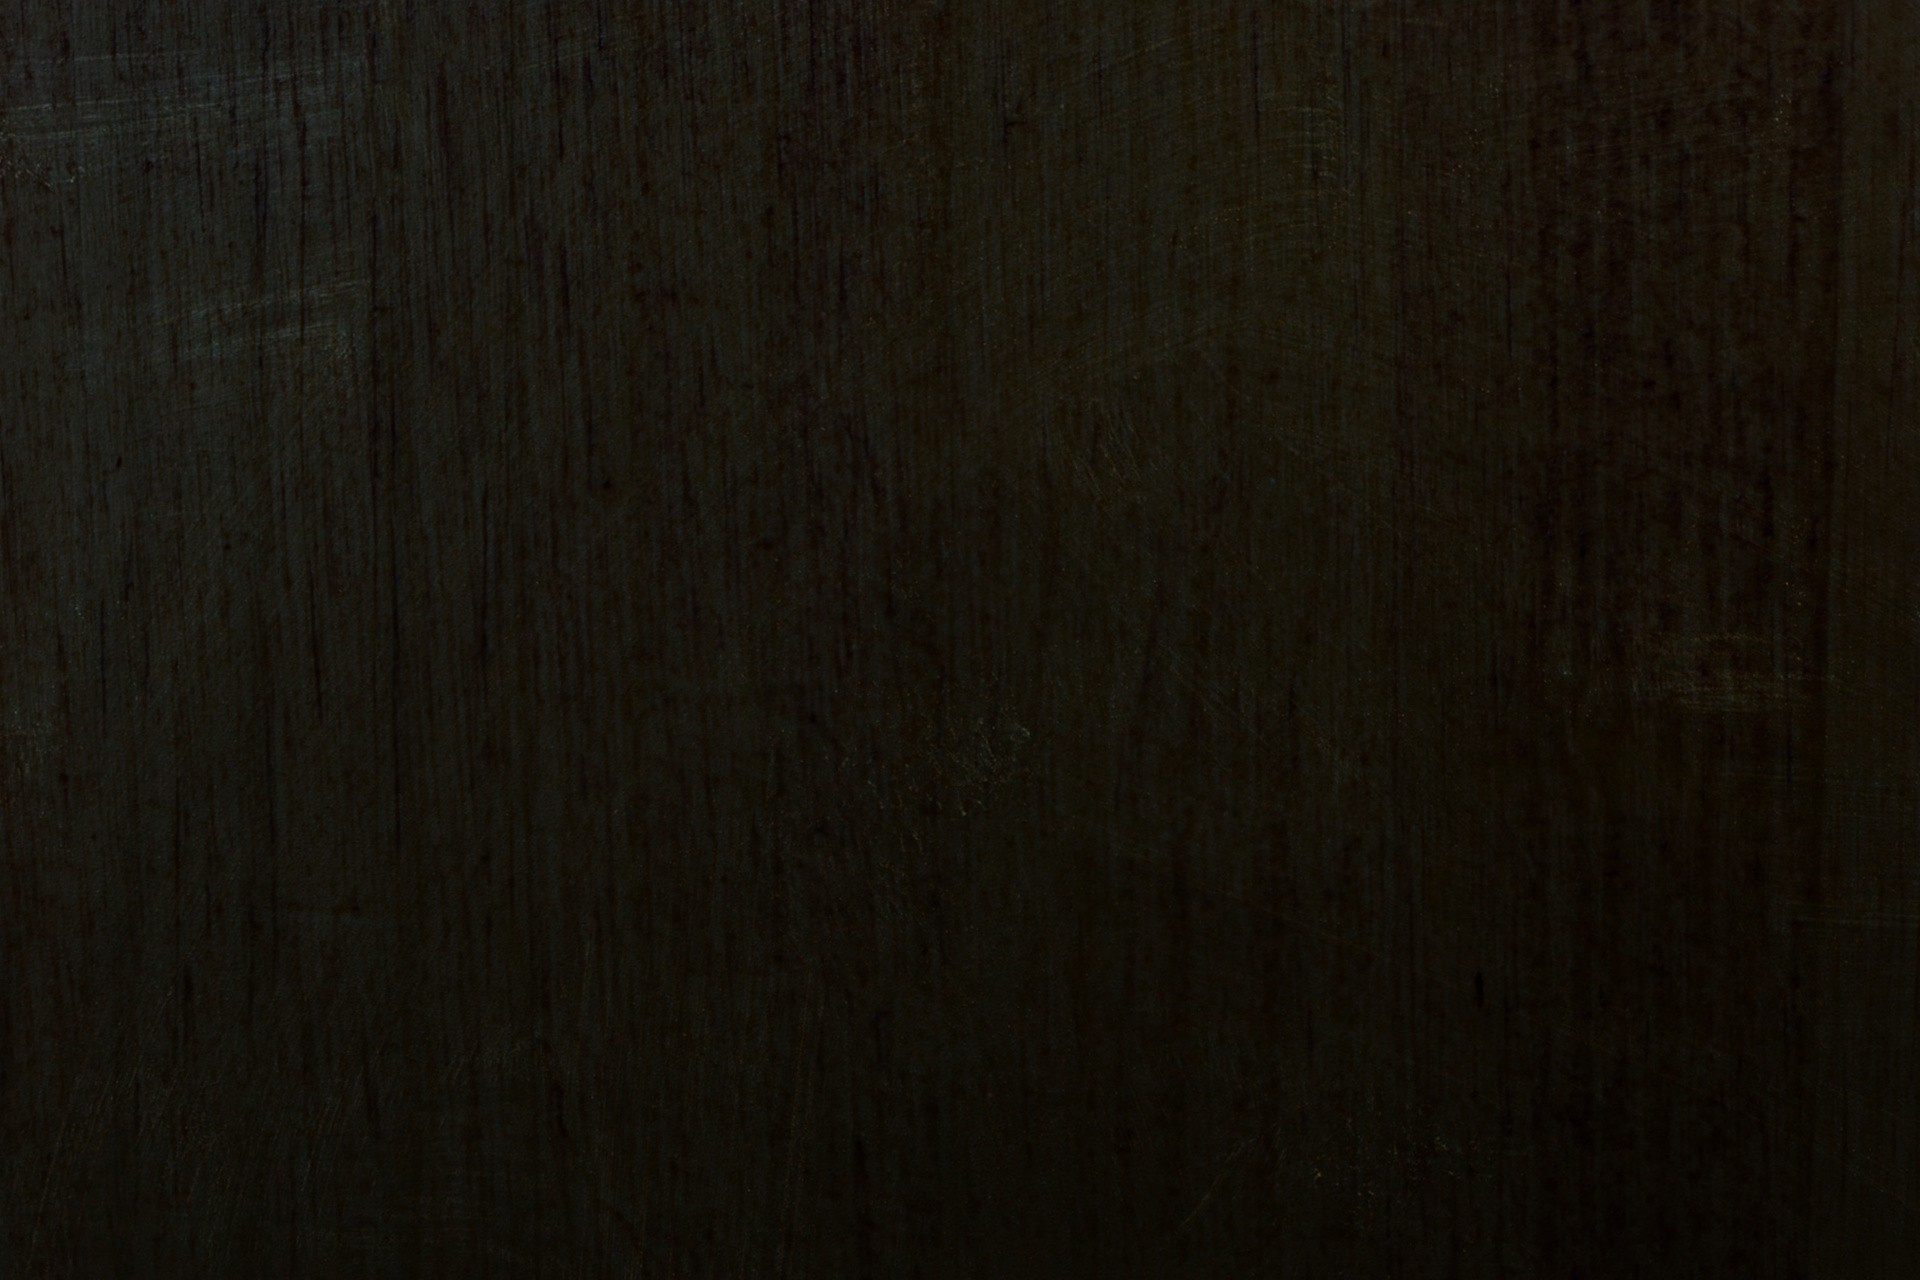 Black Wood Grain Wallpaper Wood Grain Background 183 ① Download Free Awesome High